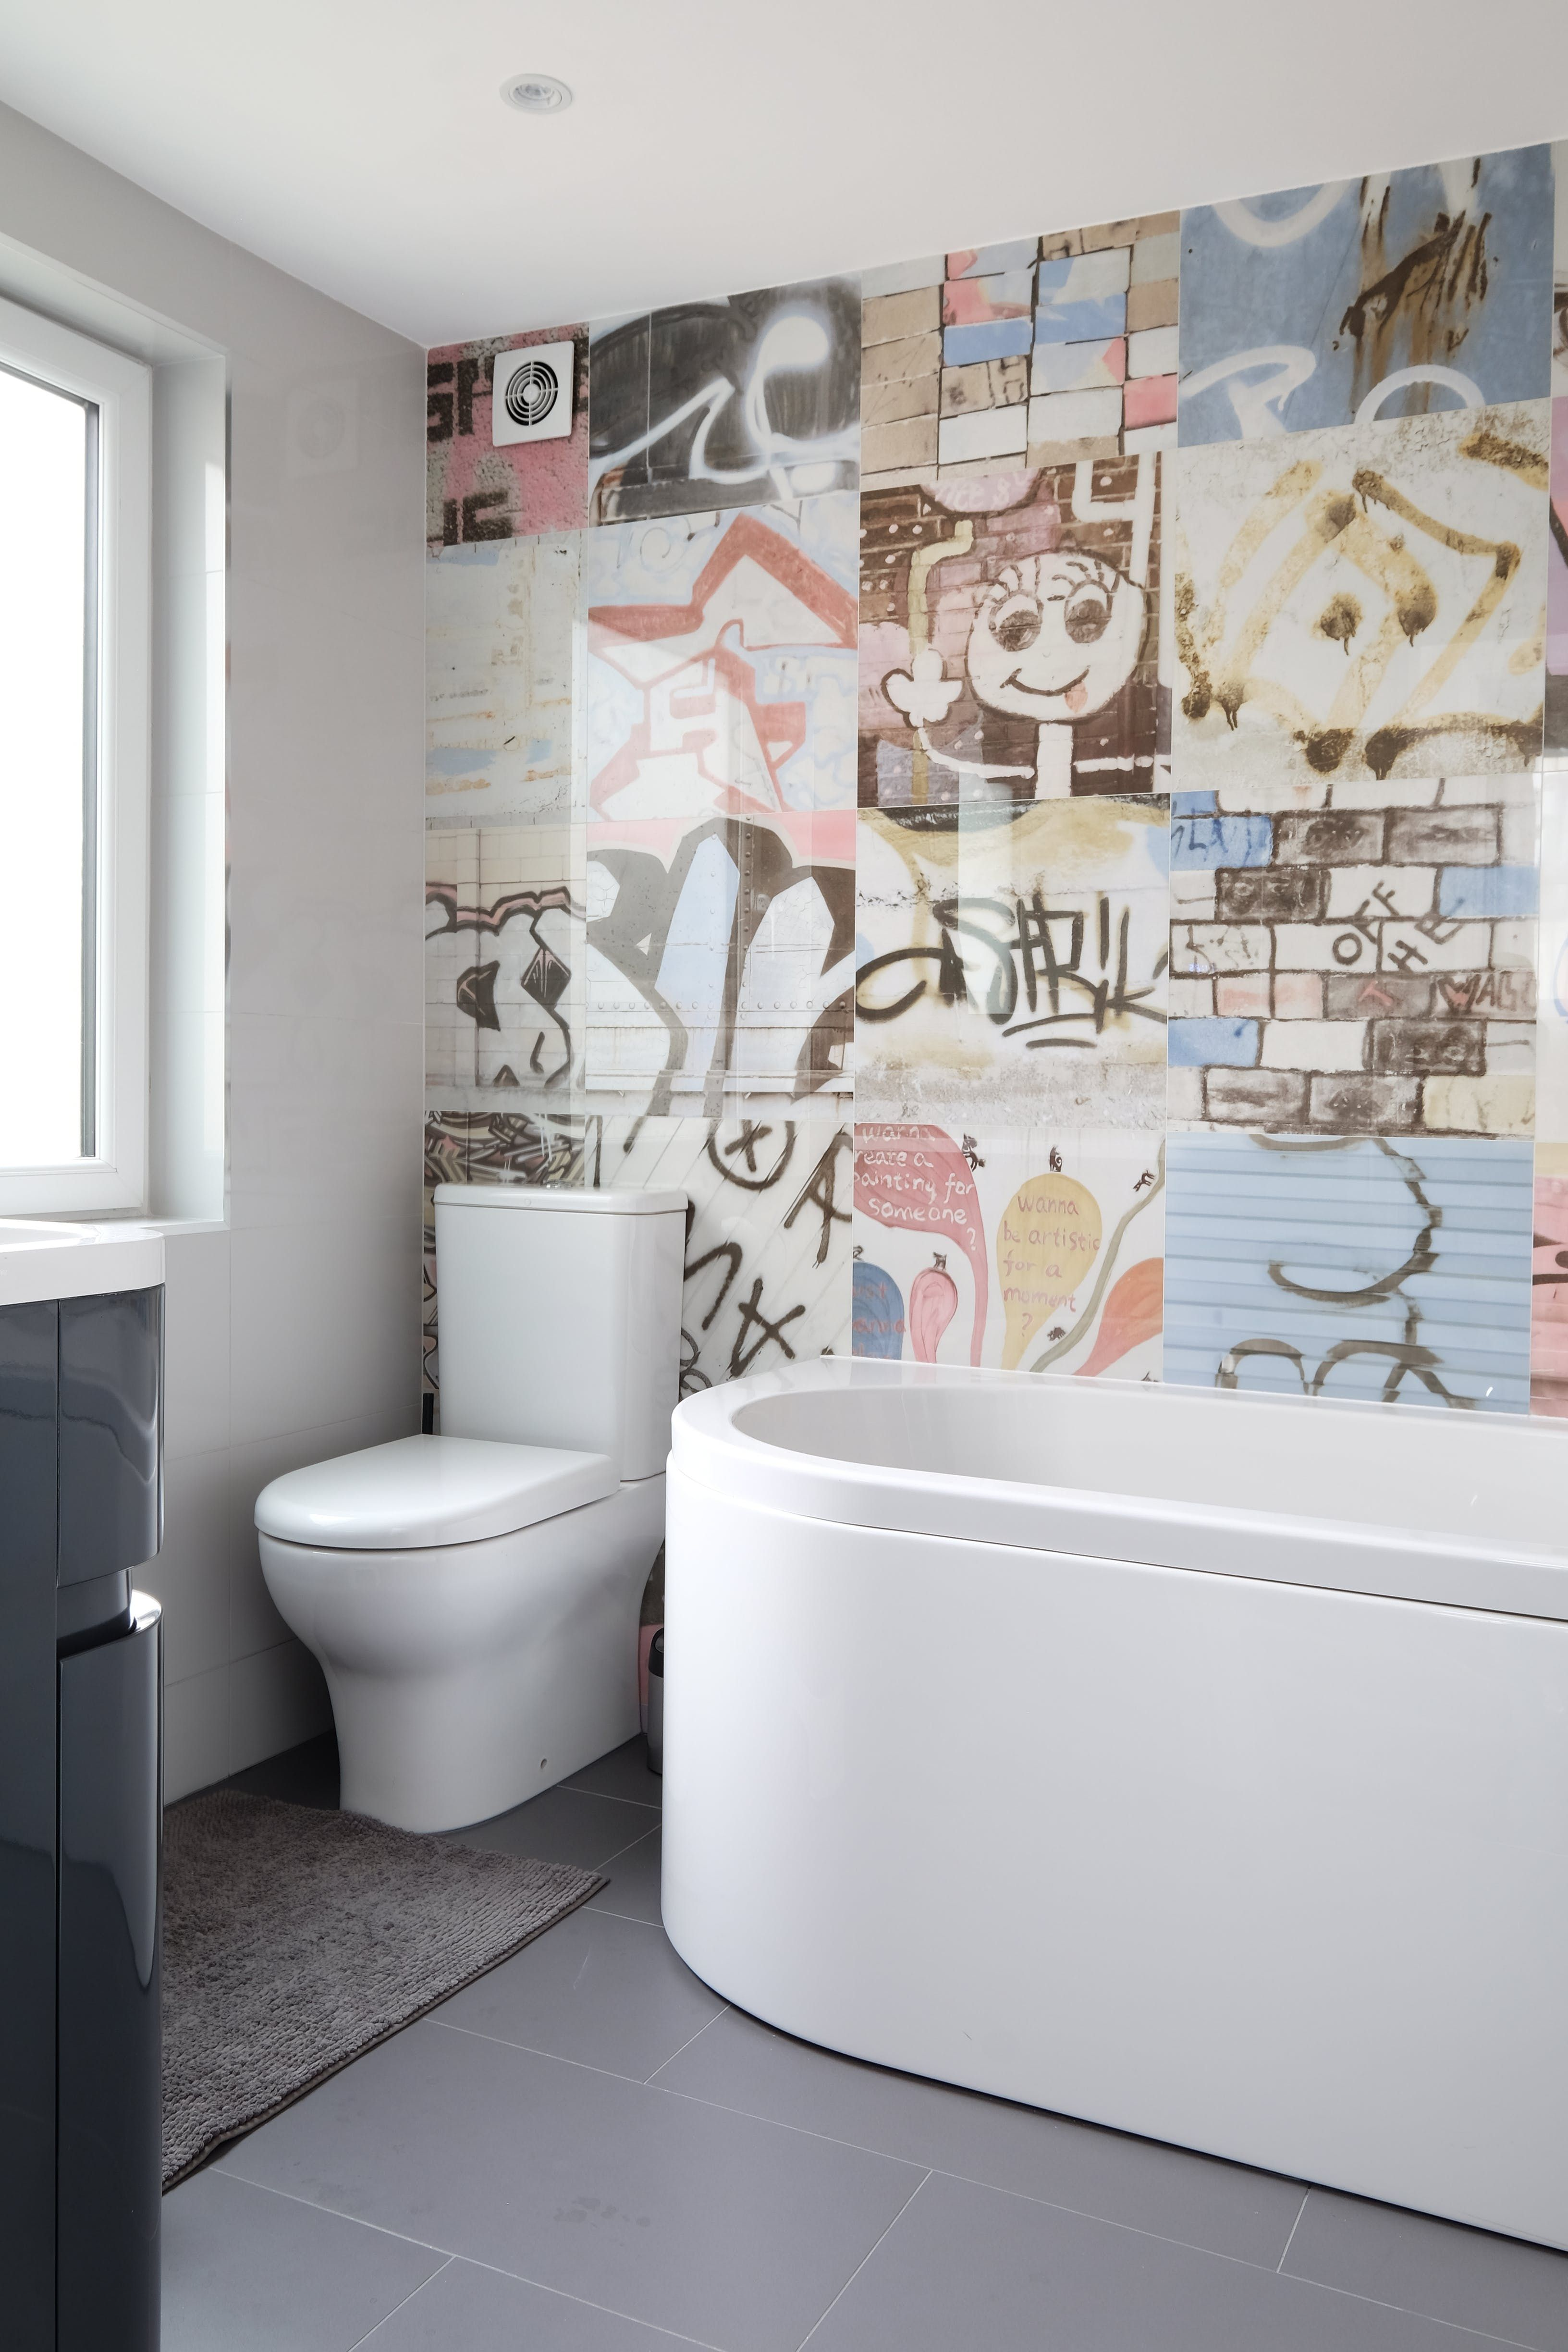 Tour a Small, Renovated West London Home | Tiles direct, West london ...